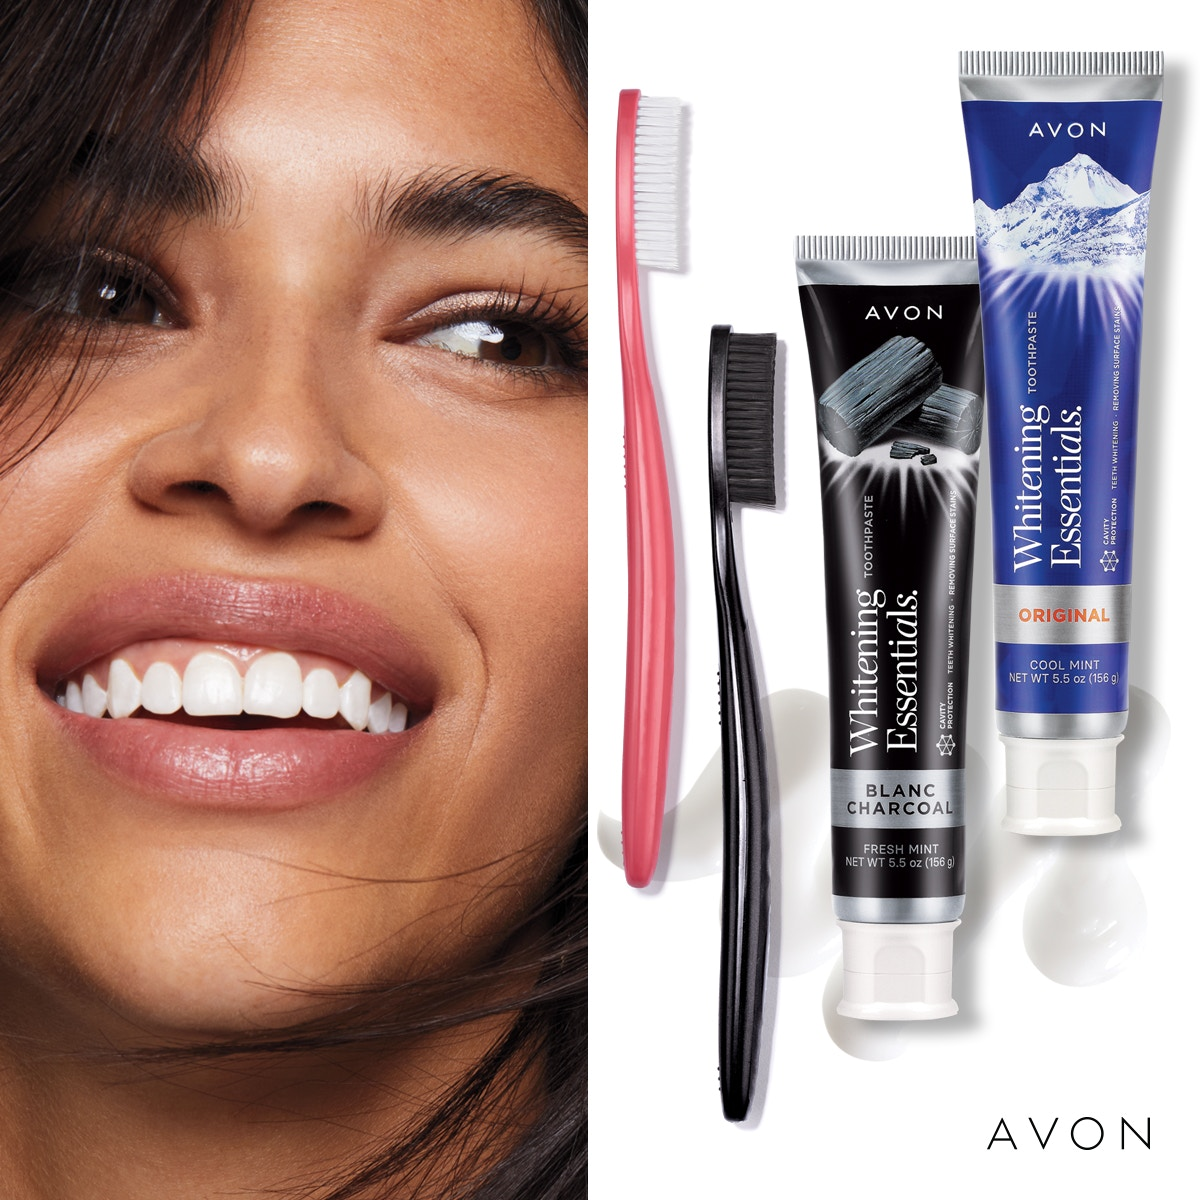 Our #uniquely-shaped brush is designed for maximum coverage over teeth. A #specially-designed pattern sweep between your teeth to keep them #healthy & attack plaque. #Avon-Whitening-Essentials-Toothbrush_Soft_Original  #innovation #avonrep